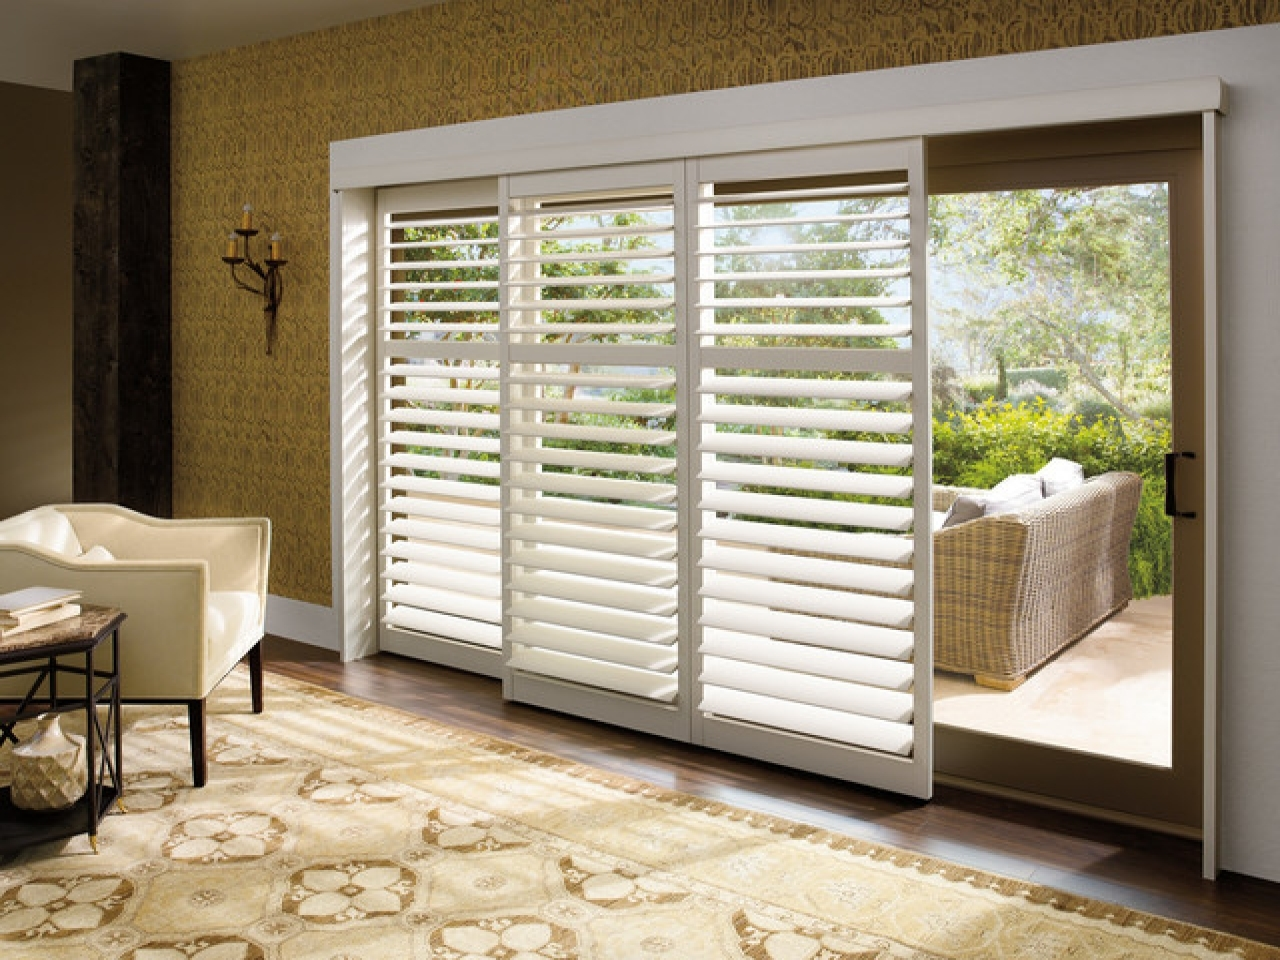 96 Sliding Glass Door Blinds